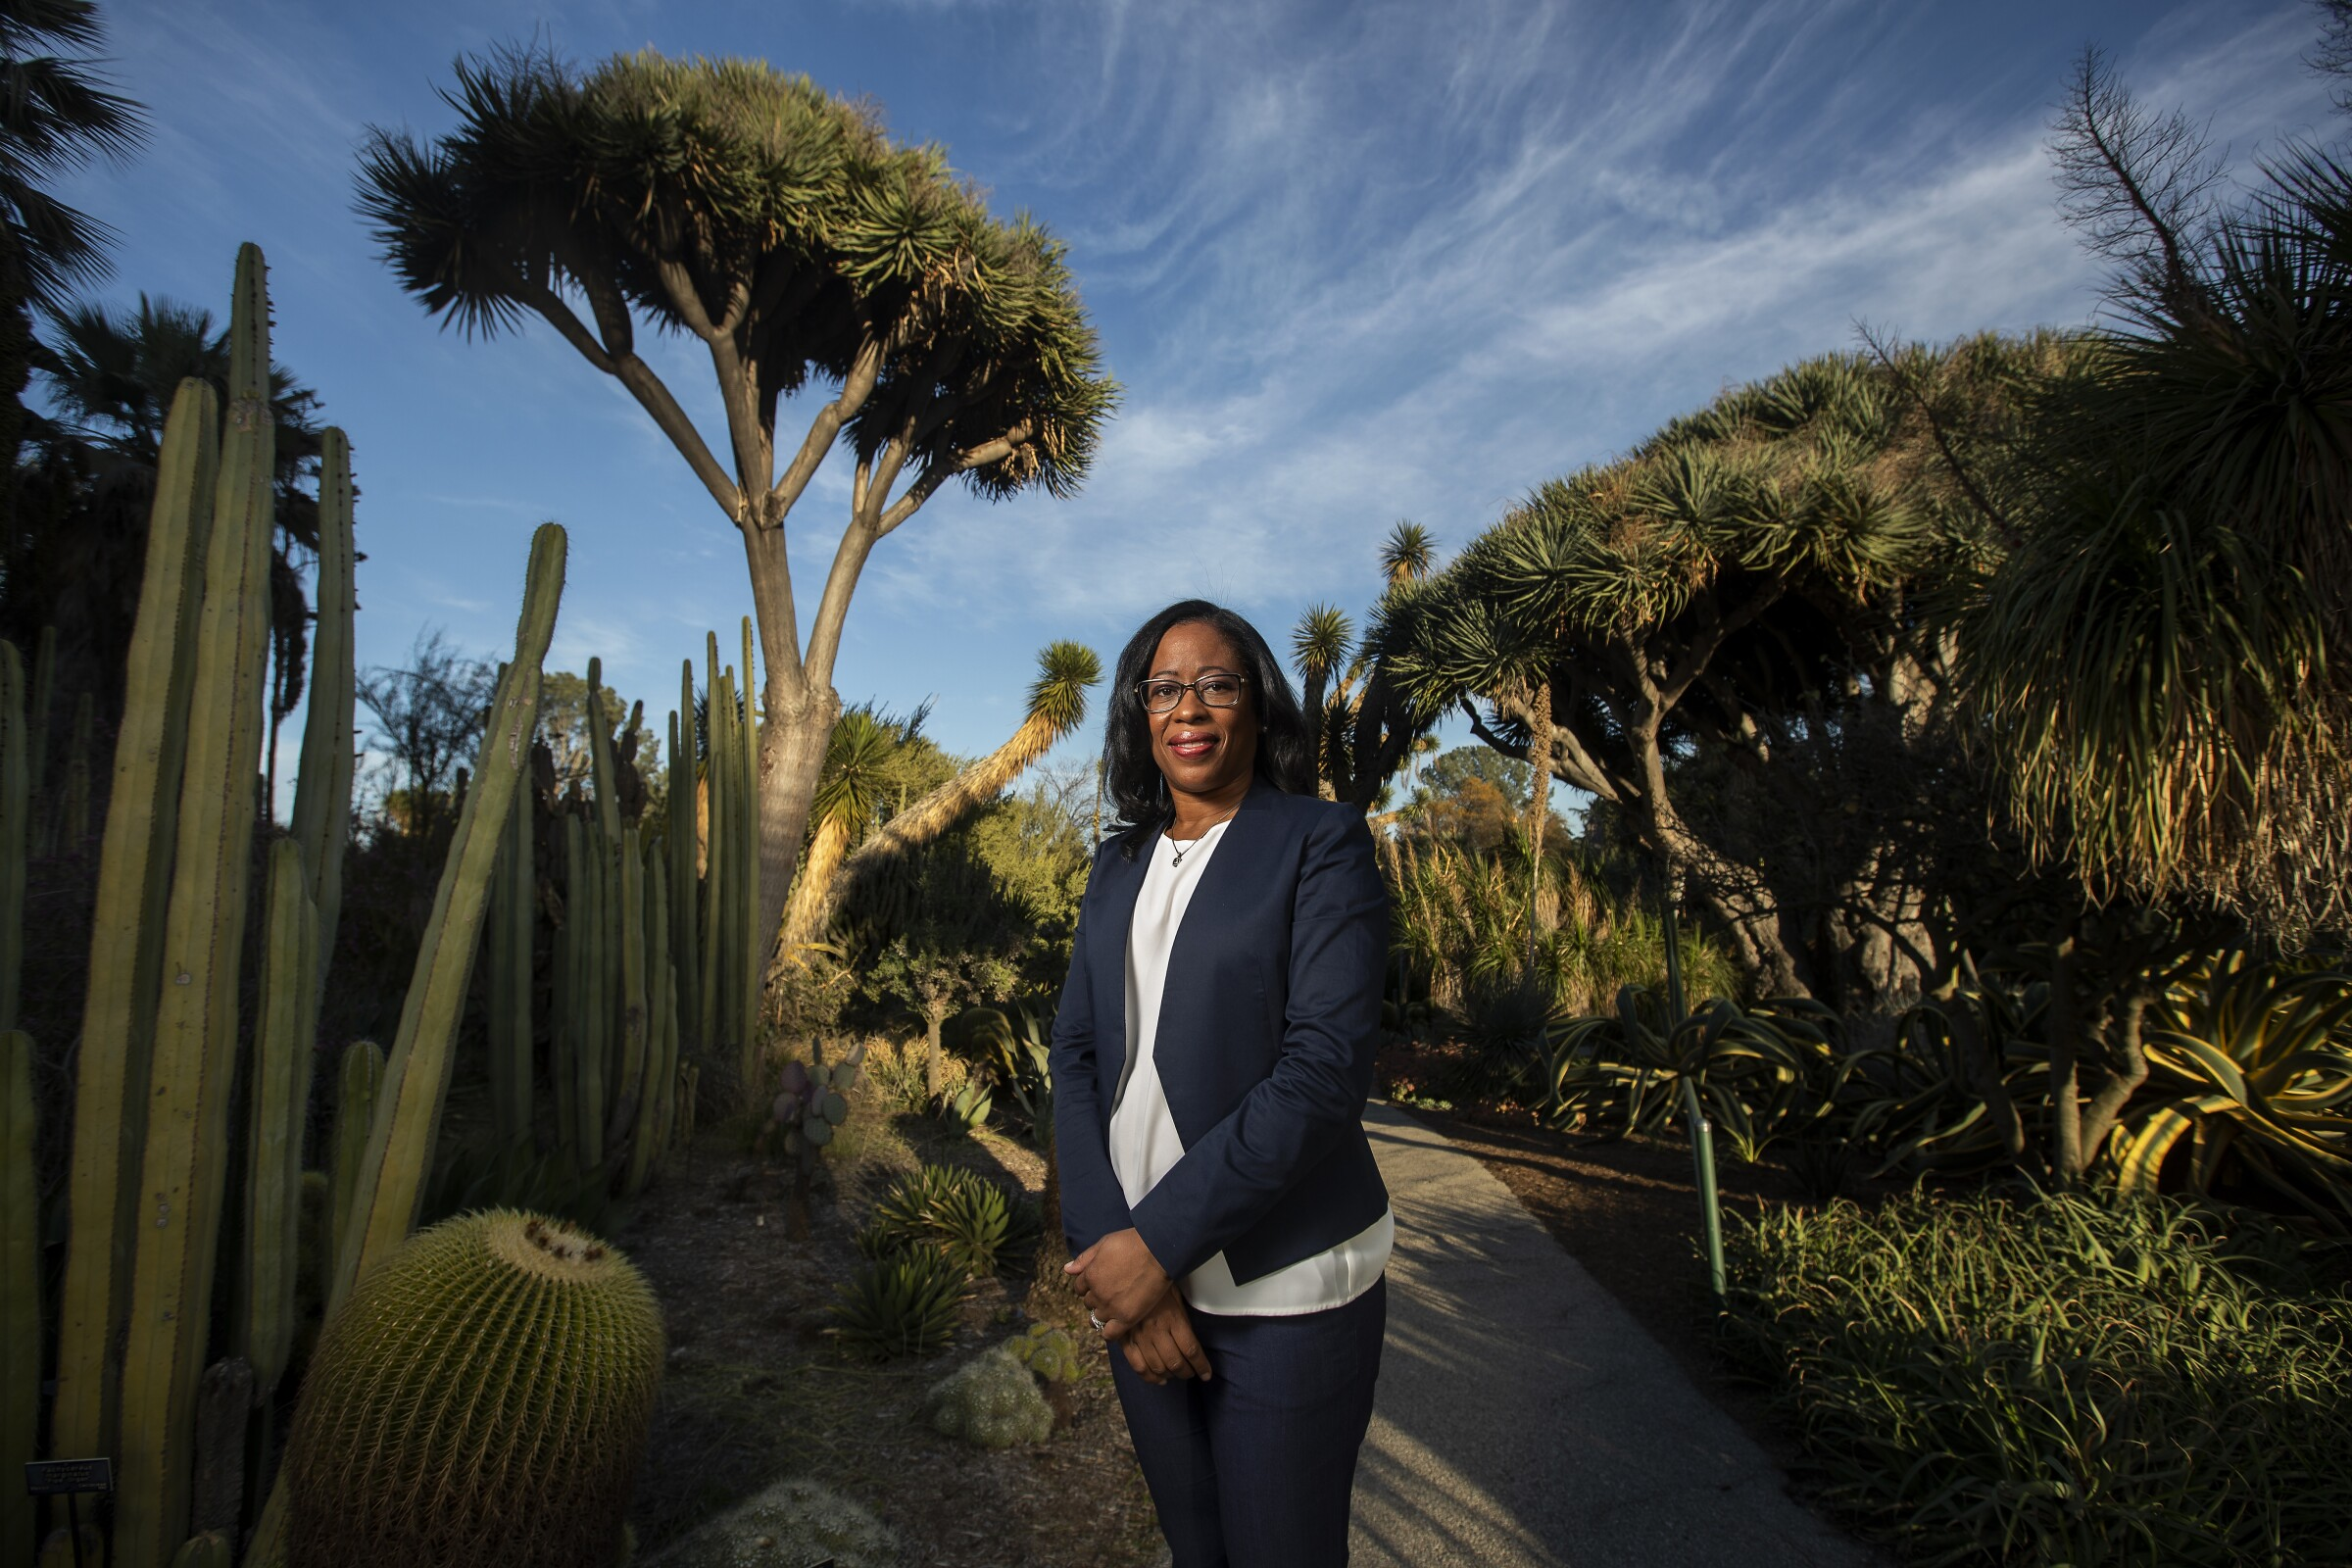 Misty Bennett, chief human resources officer at the Huntington Library desert garden in San Marino